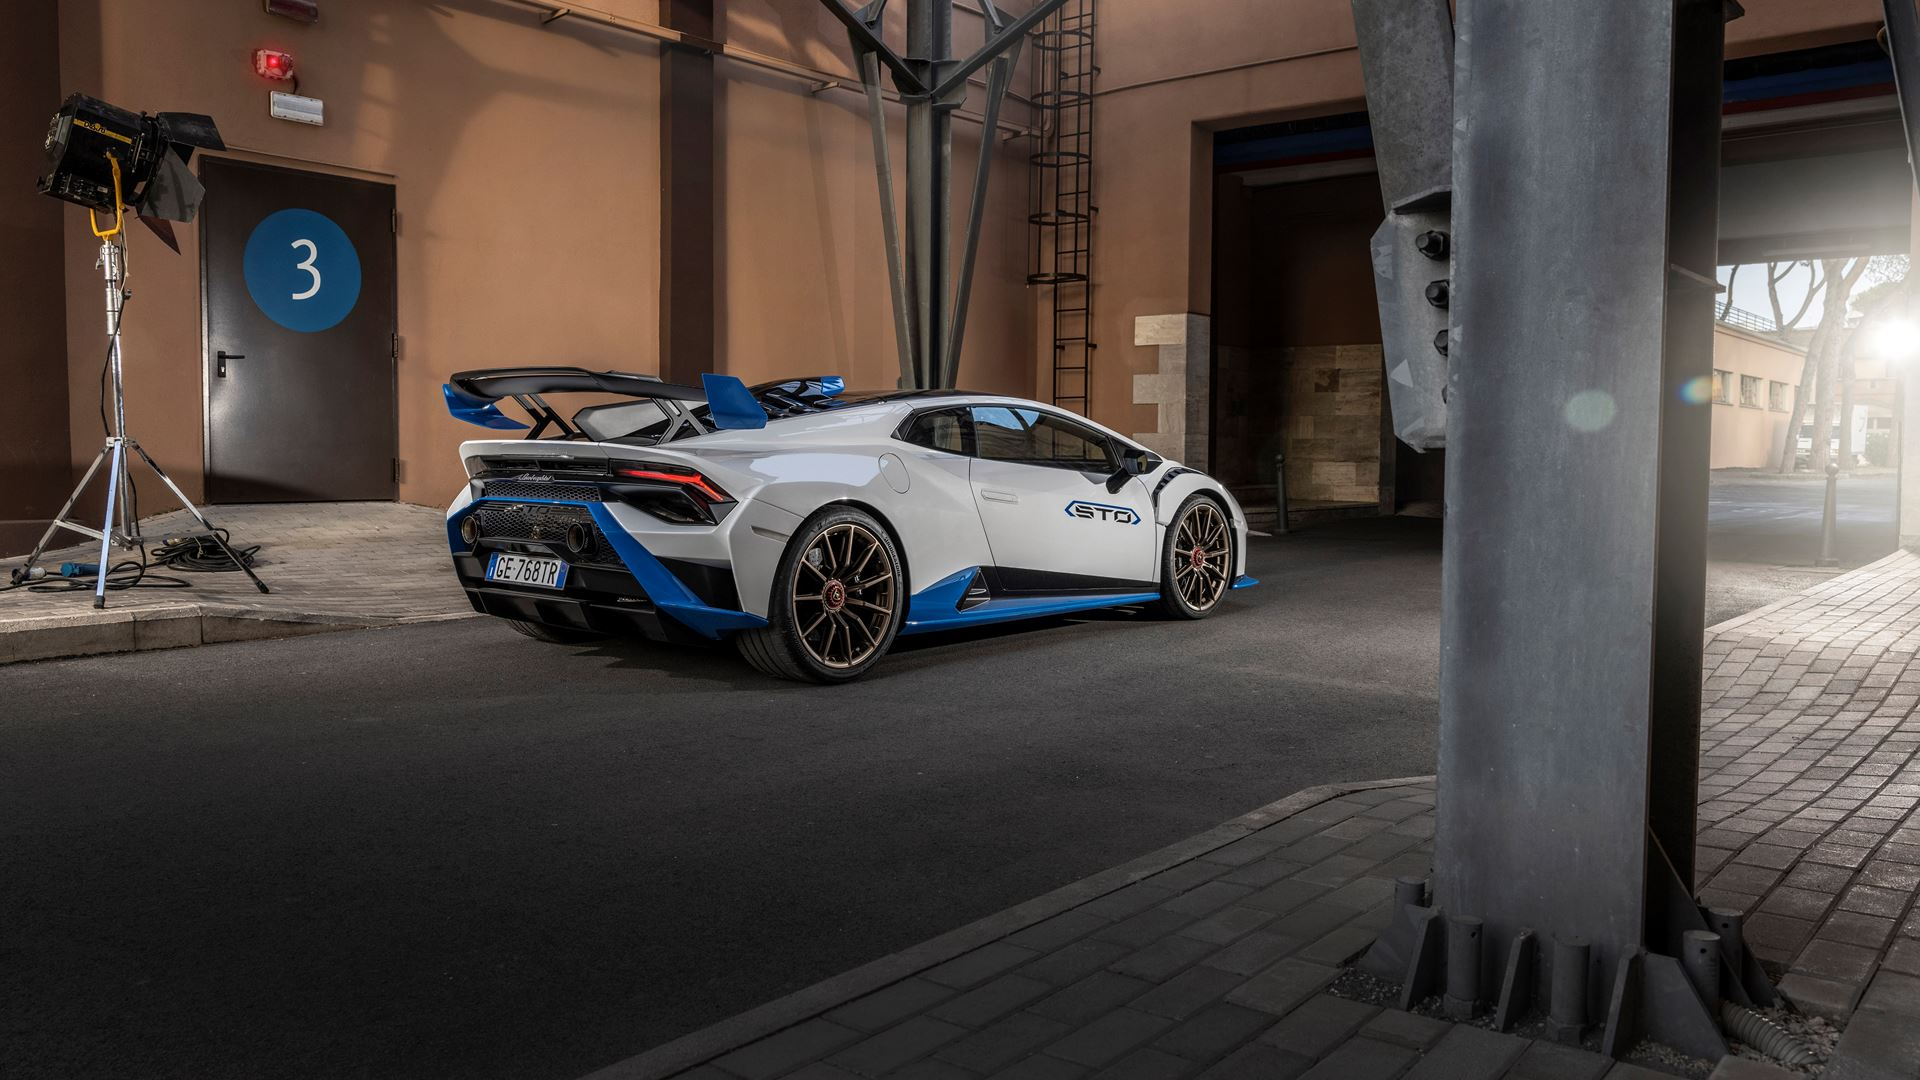 Lamborghini Huracán STO finally unleashed First test-drives in Rome and at the Autodromo Piero Taruffi in Vallelunga - Image 1